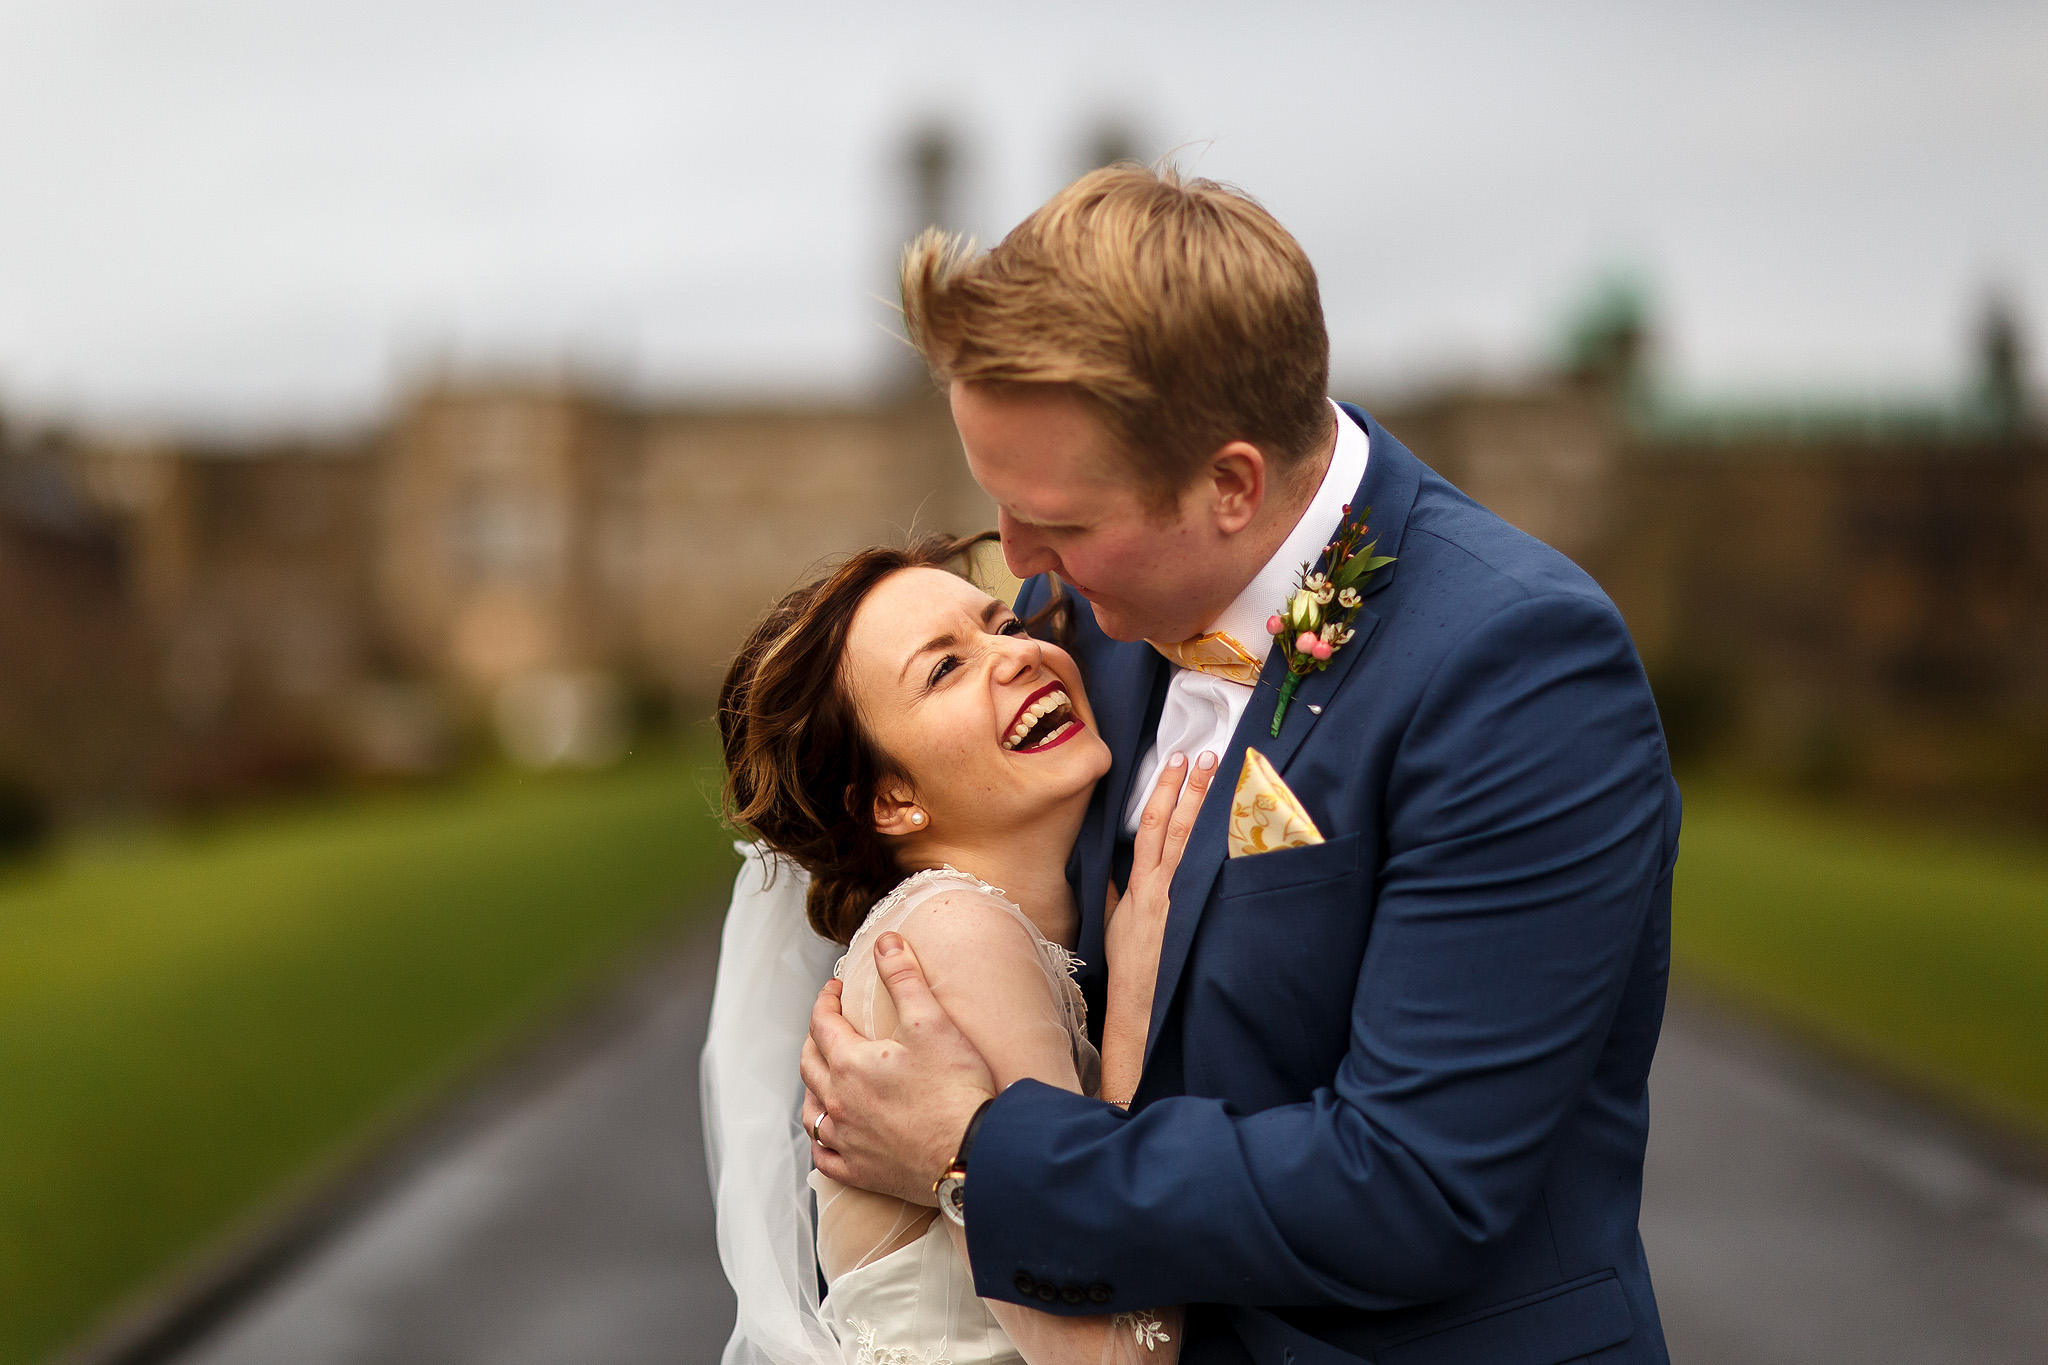 Bride with brunette hair and dark lipstick laughing in her grooms arms outside Stonyhurst College.